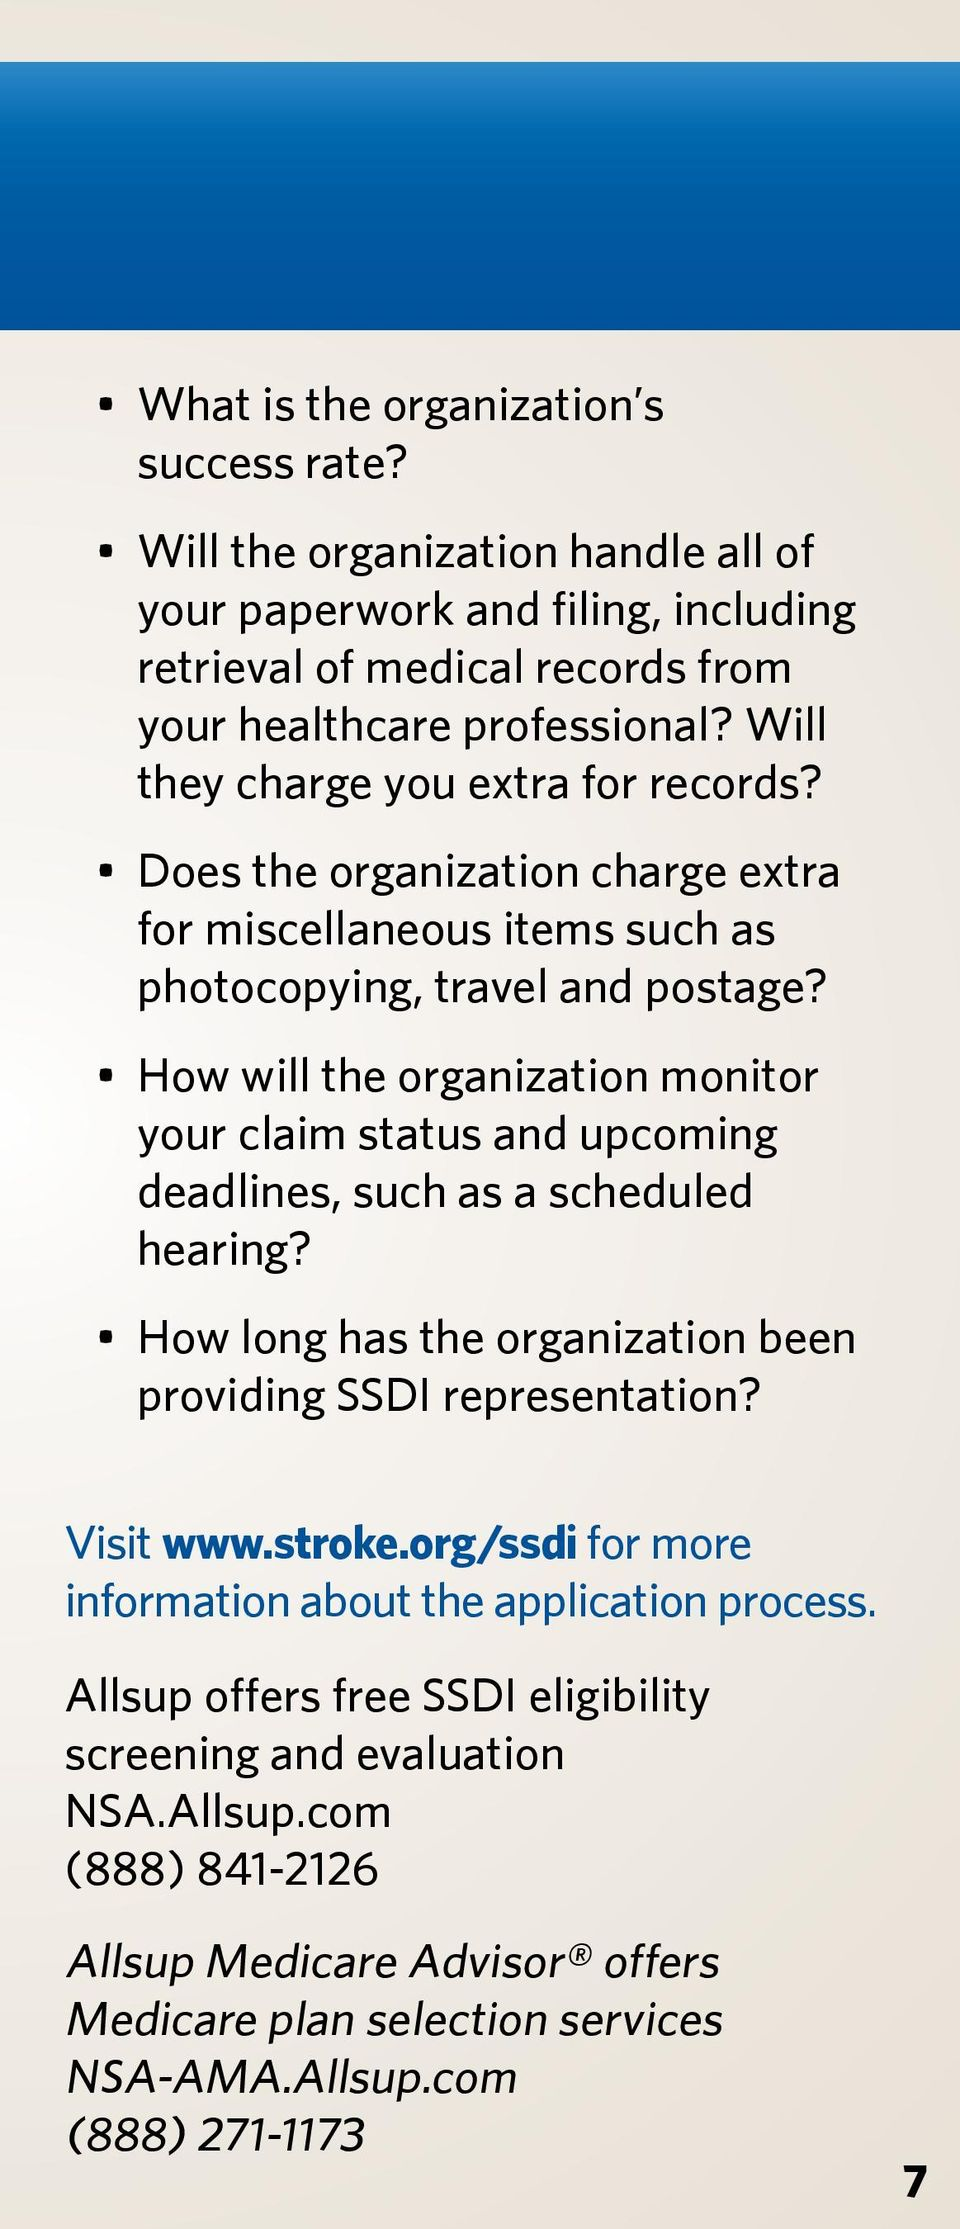 How will the organization monitor your claim status and upcoming deadlines, such as a scheduled hearing? How long has the organization been providing SSDI representation? Visit www.stroke.